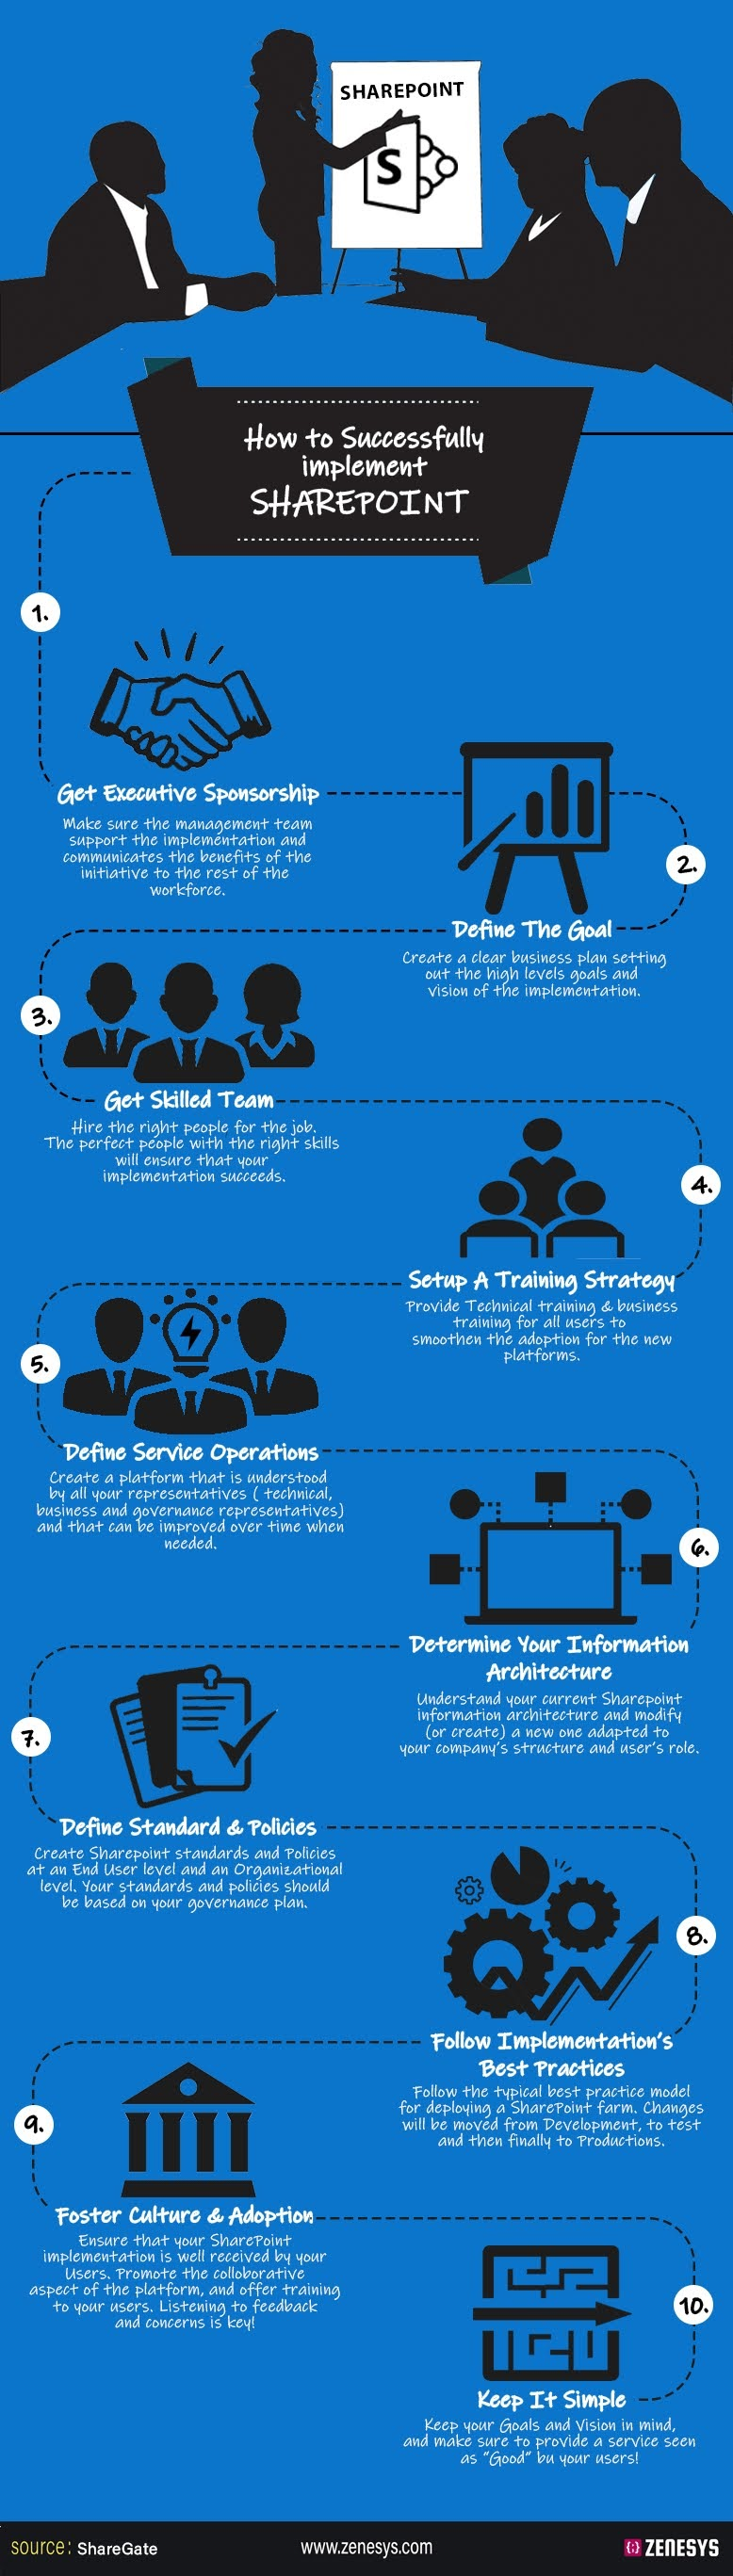 How to Succesfully Implement Sharepoint? #infographic